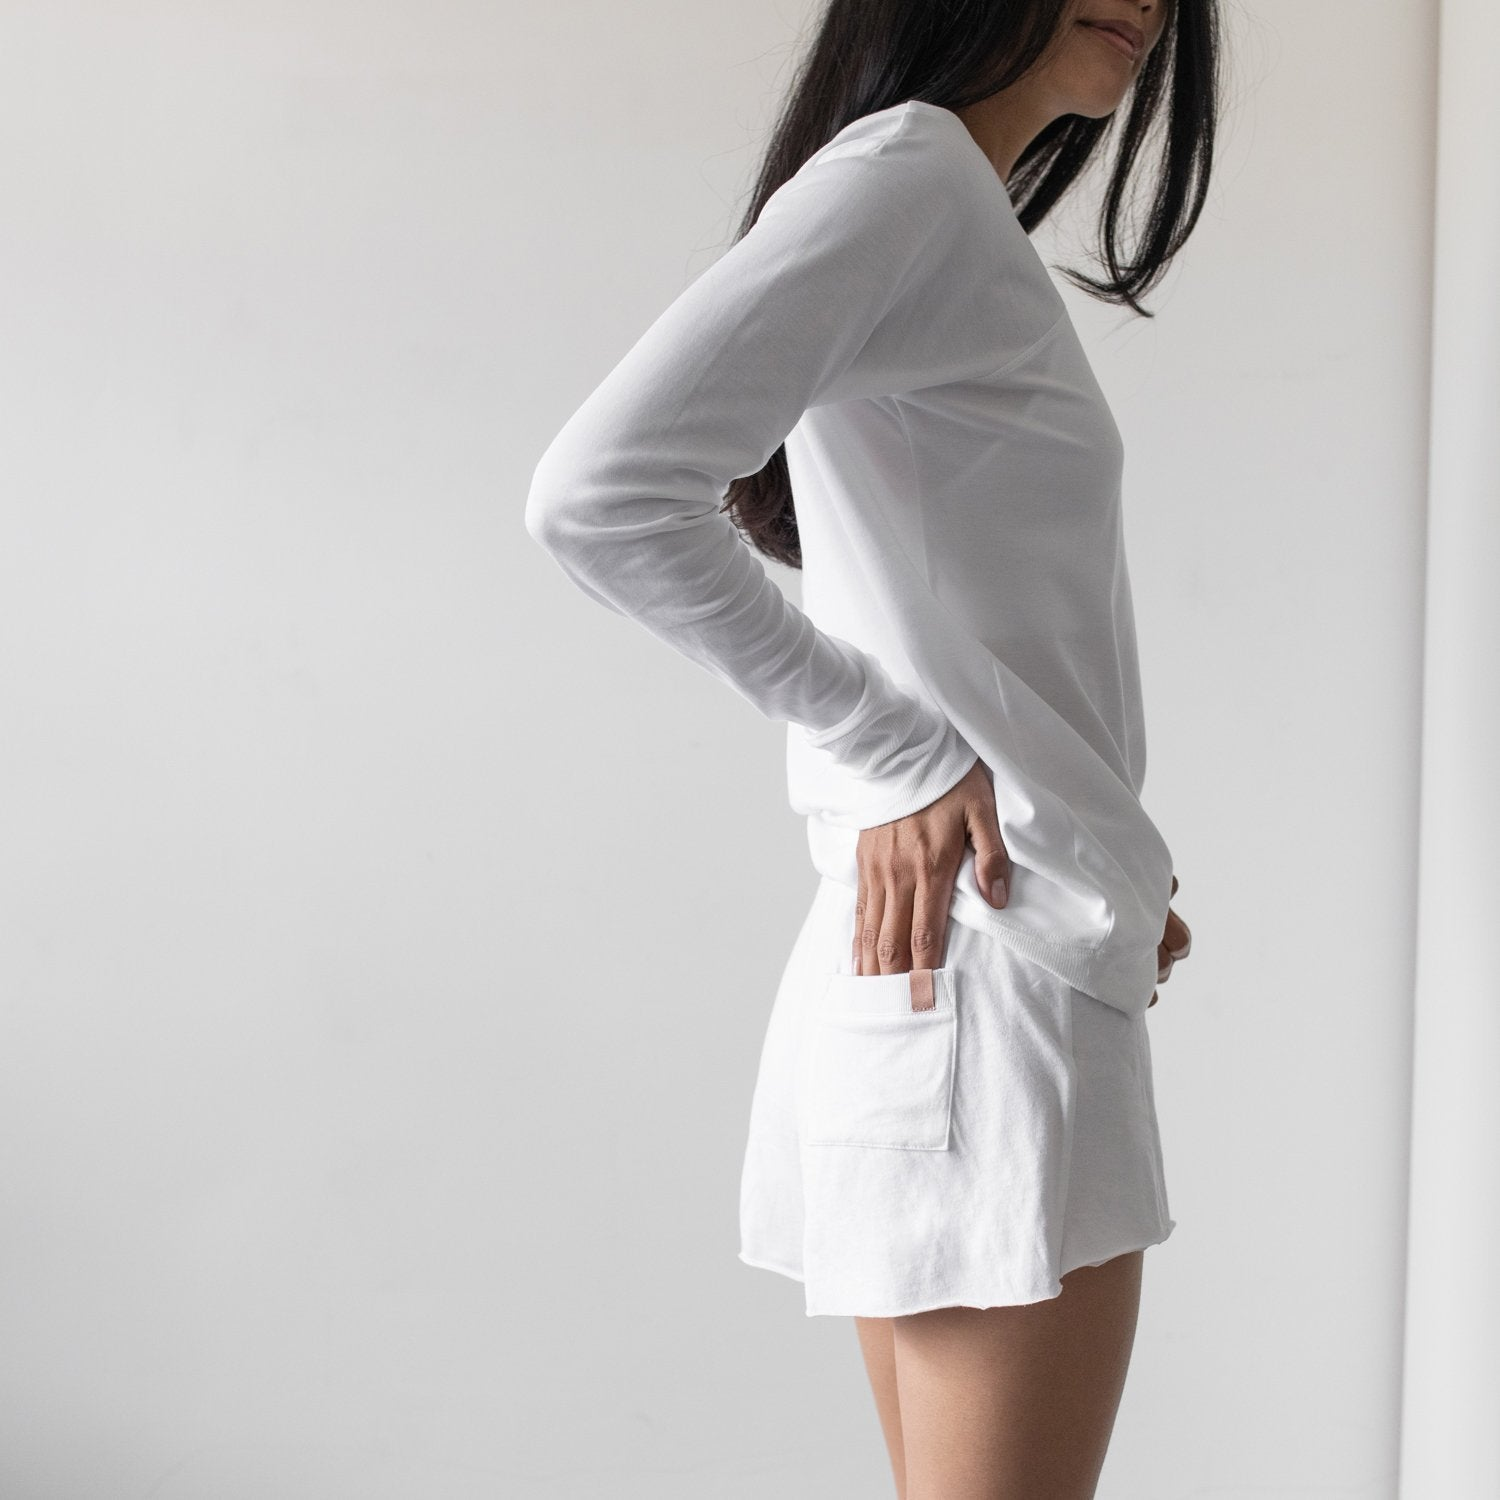 Lunya Sleepwear Pima Short - #White